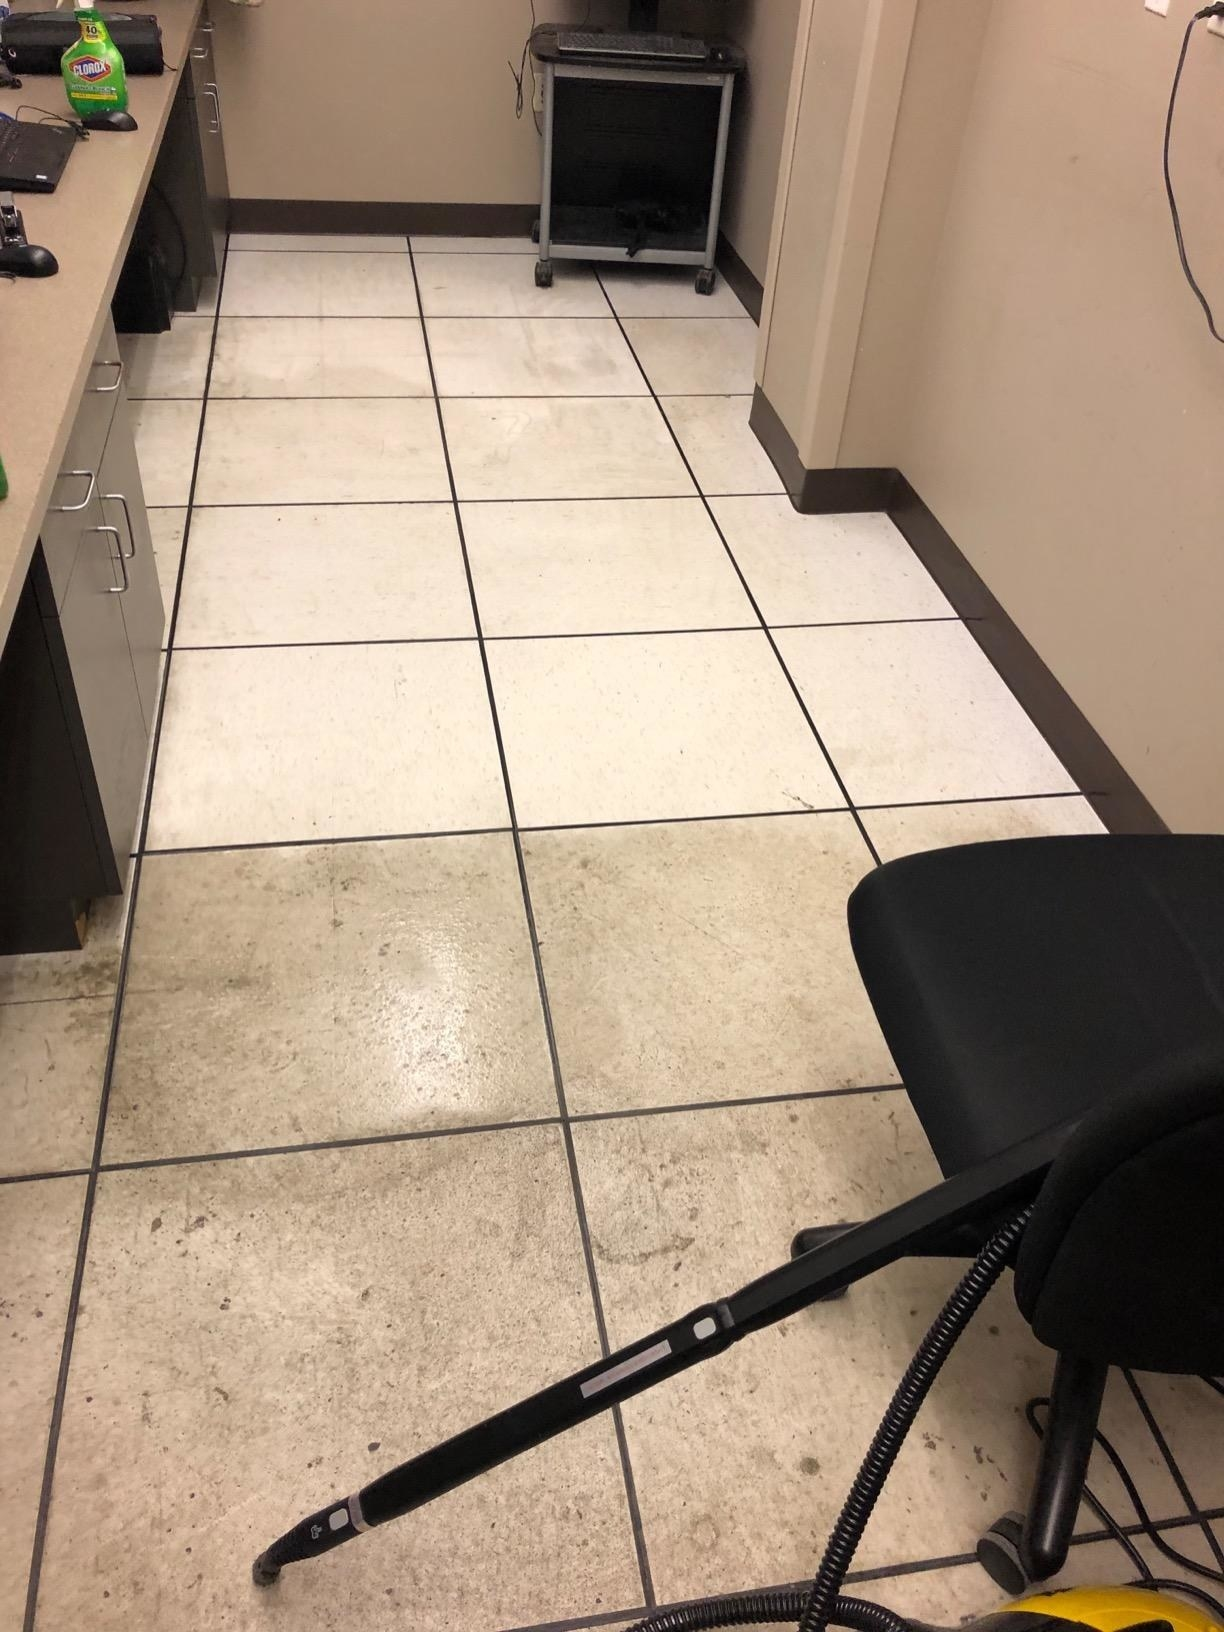 reviewer image of a tile floor where half of it has been steam cleaned and the other half is dark and dirty